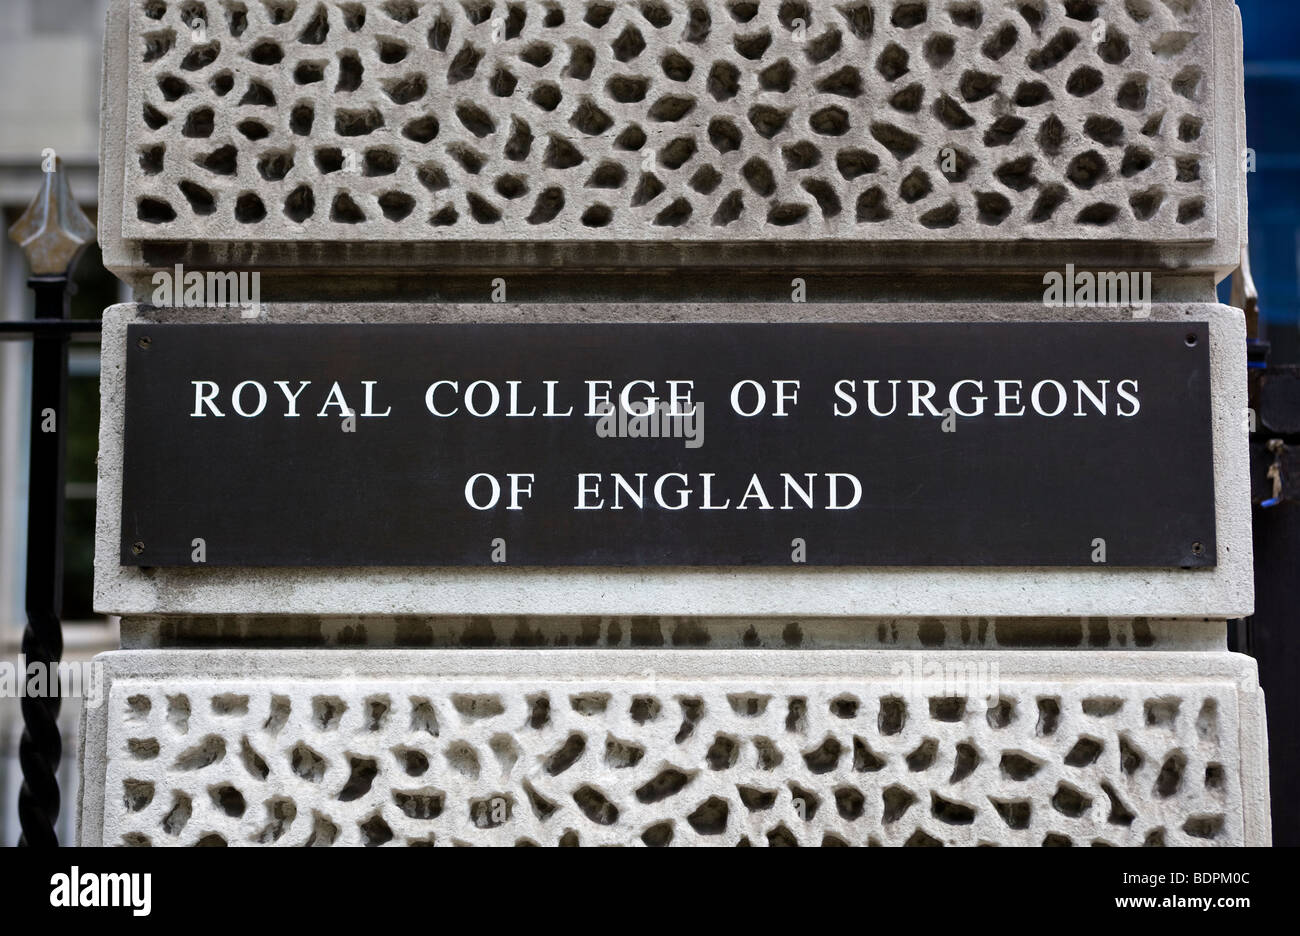 Royal College of Surgeons Lincolns Inn Fields - Stock Image